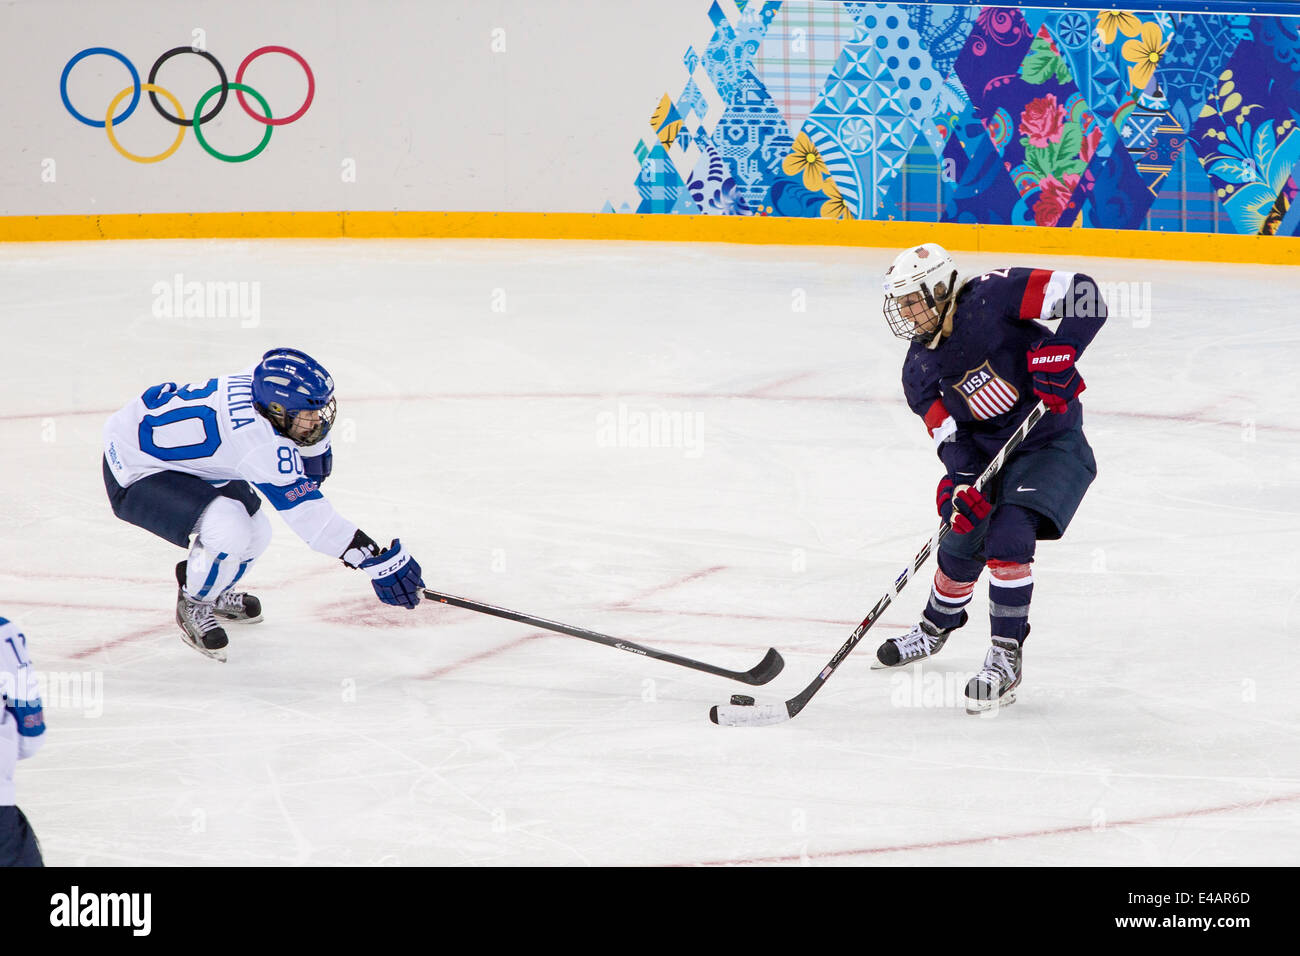 22d1823b9 Venia Hovi (FIN) and Amanda Kessel (USA) during ice hockey game at